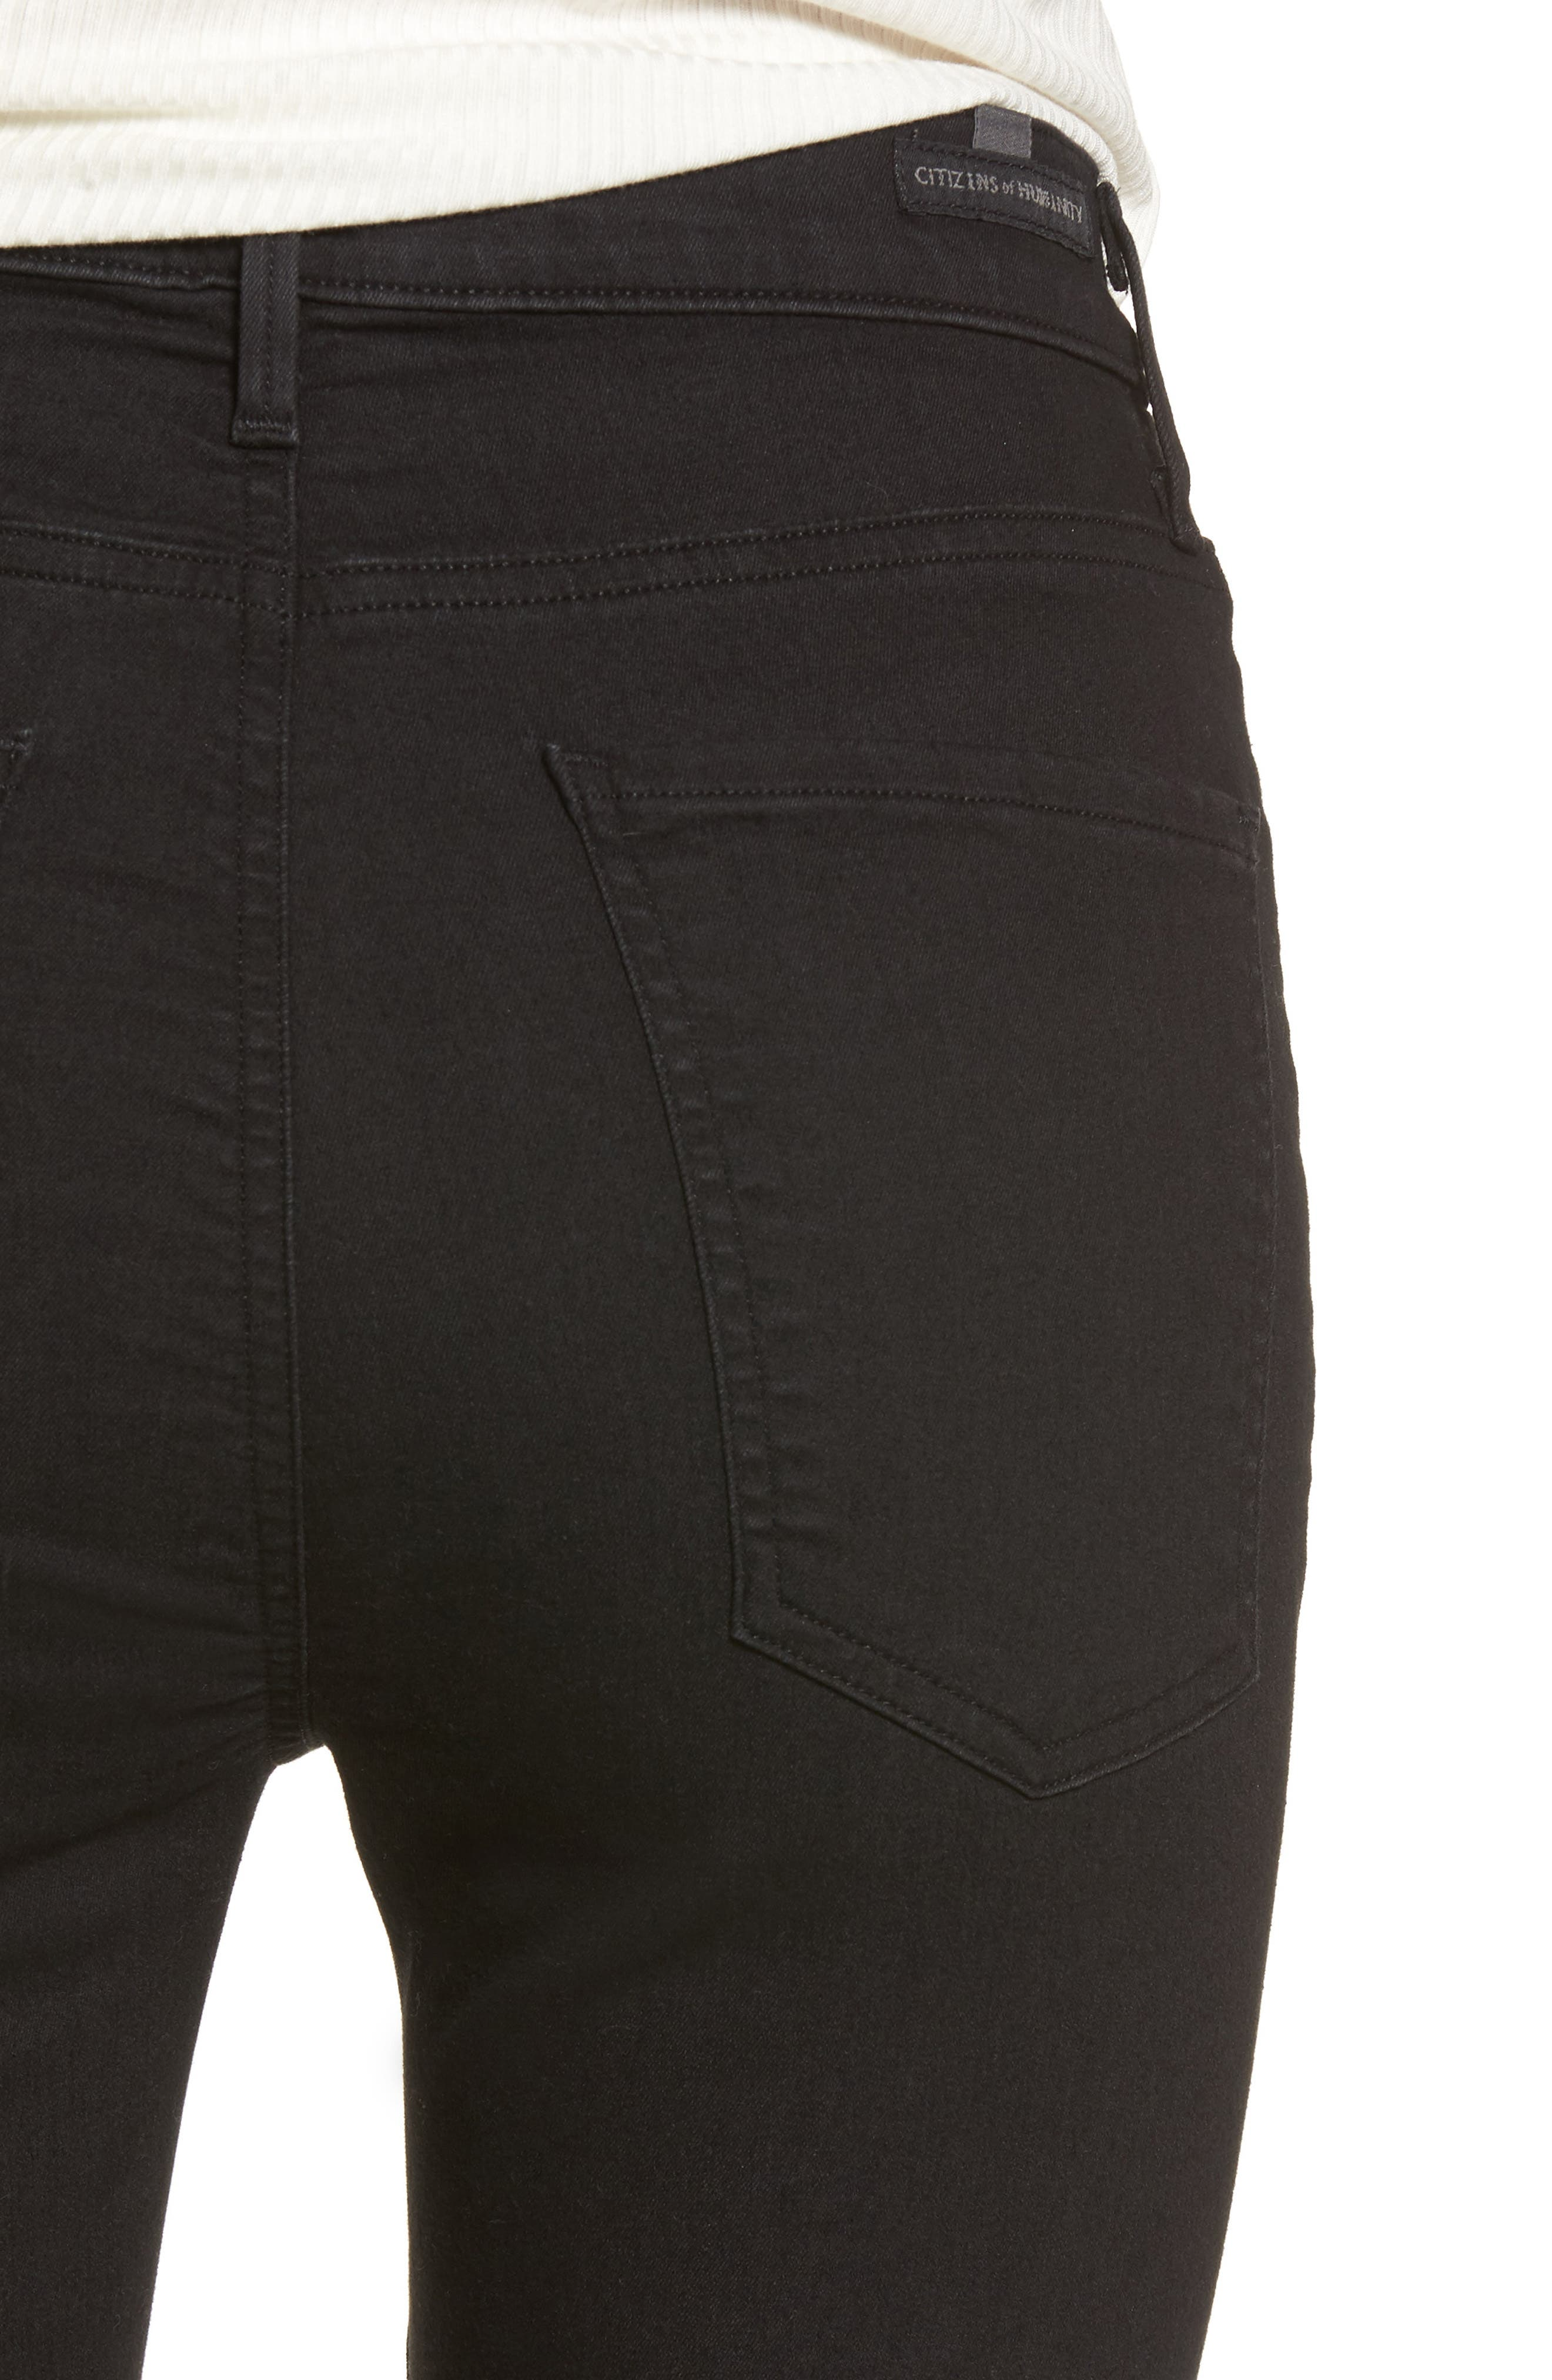 Alternate Image 4  - Citizens of Humanity Carlie High Waist Skinny Jeans (All Night)